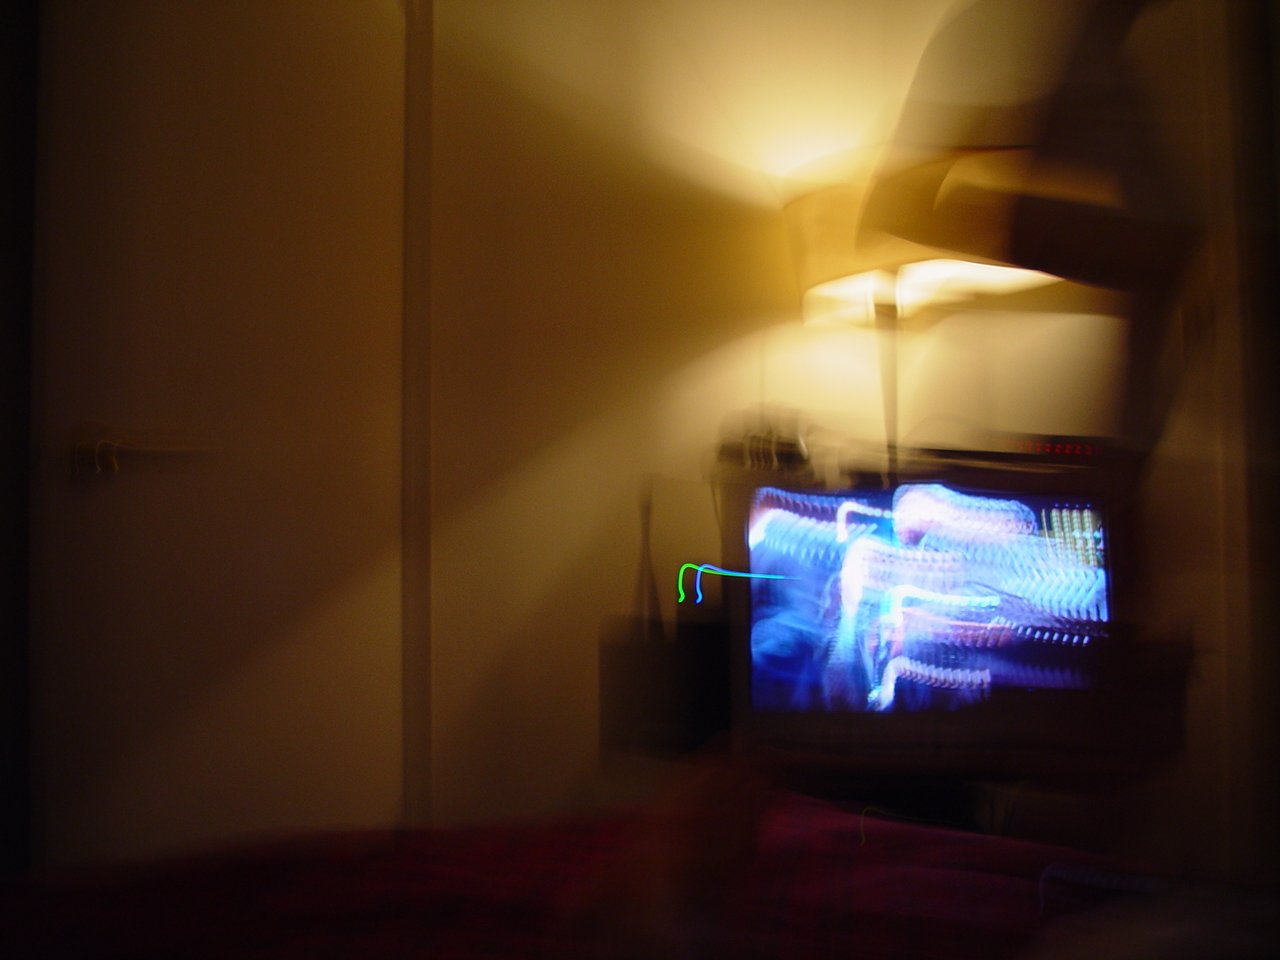 tv-abstract-1256350